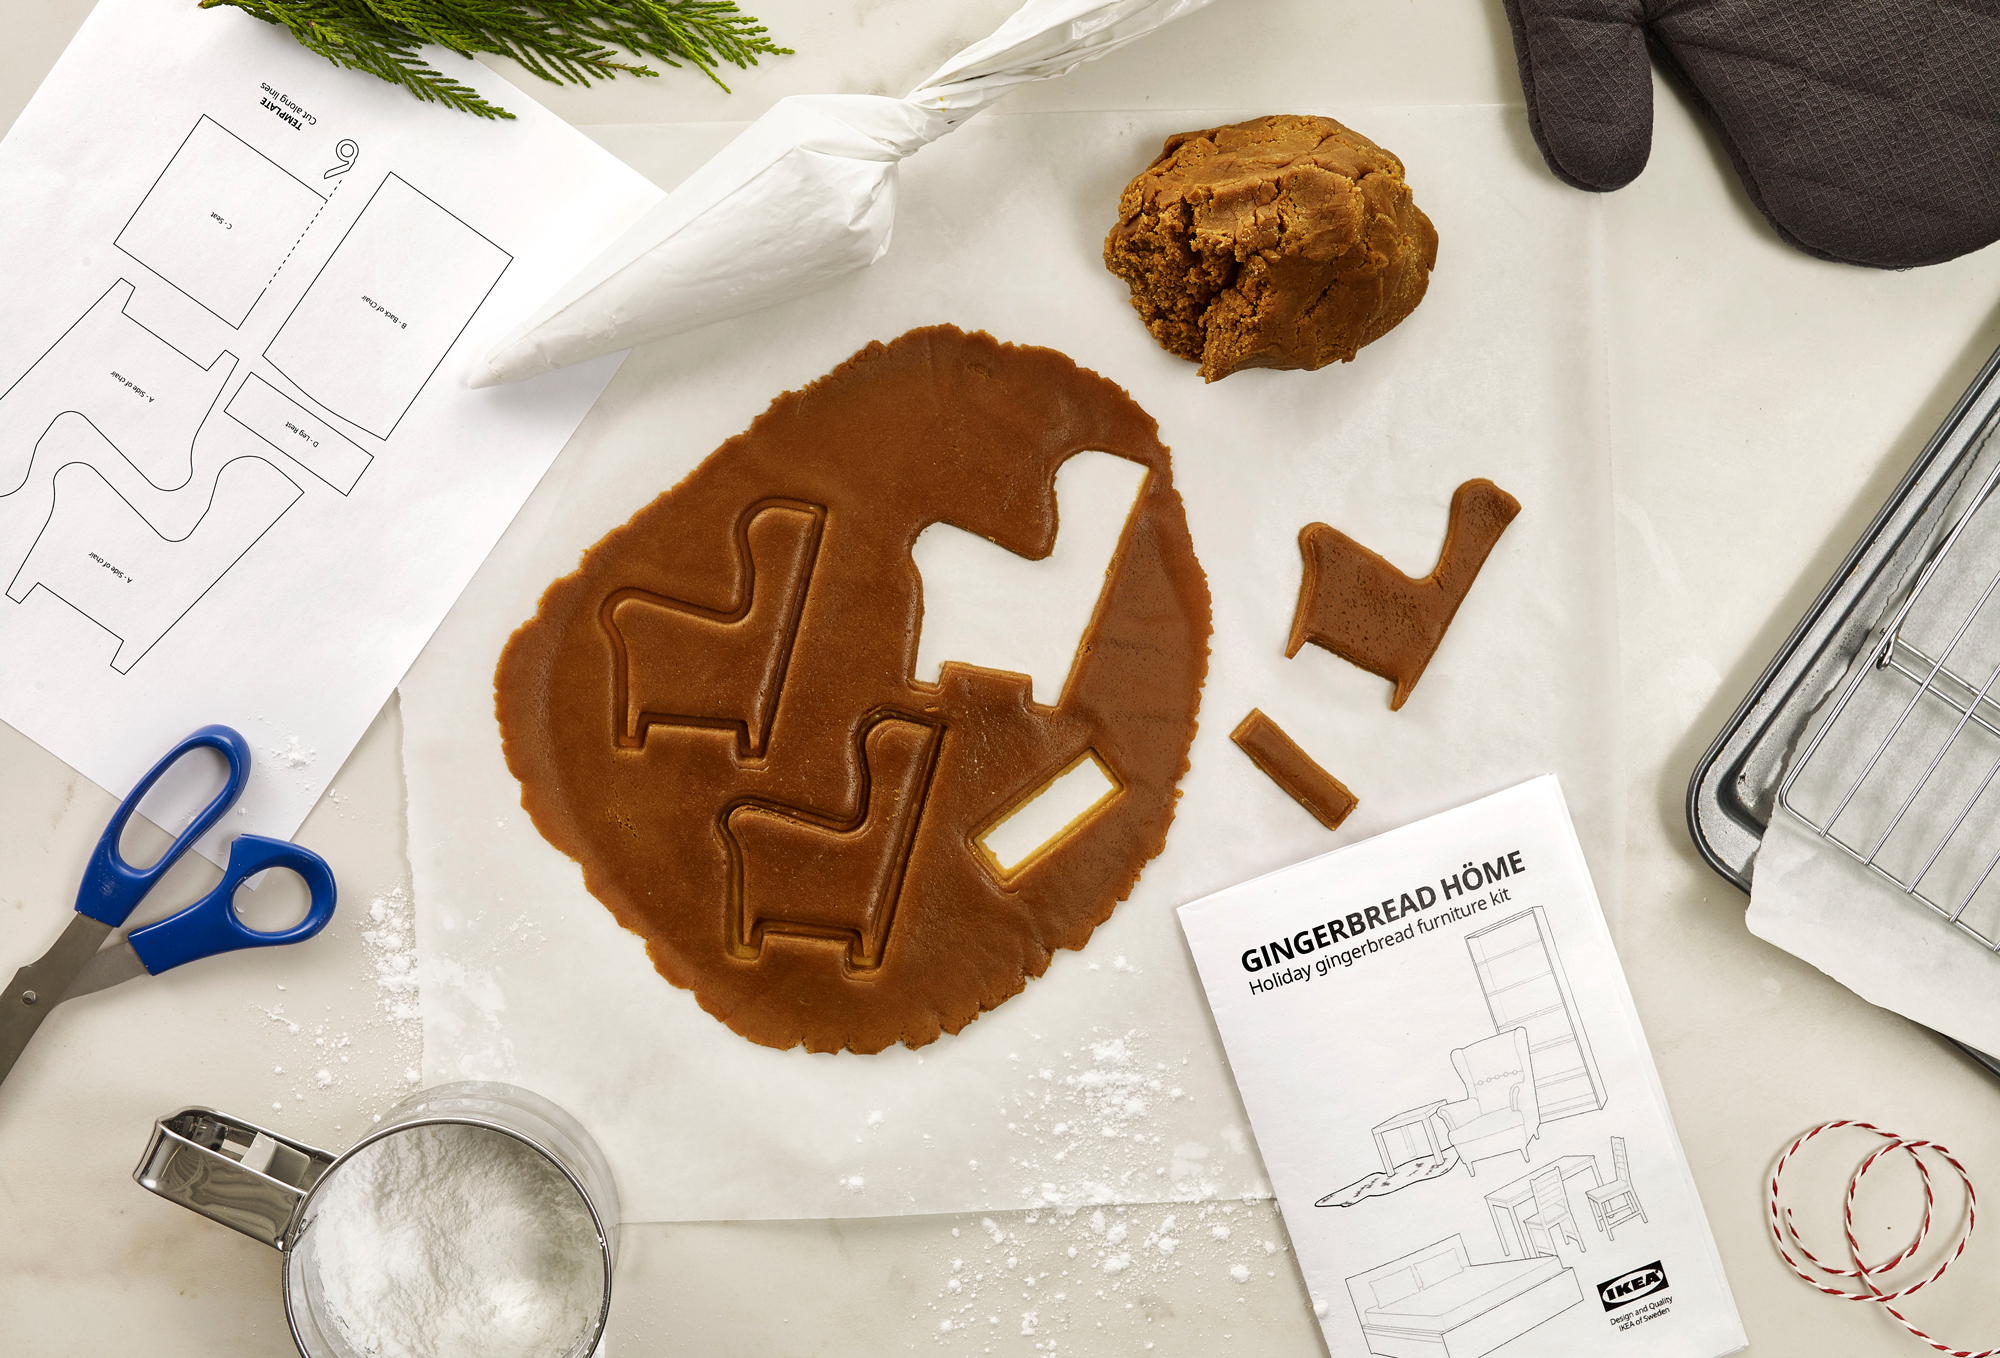 IKEA Gingerbread Home